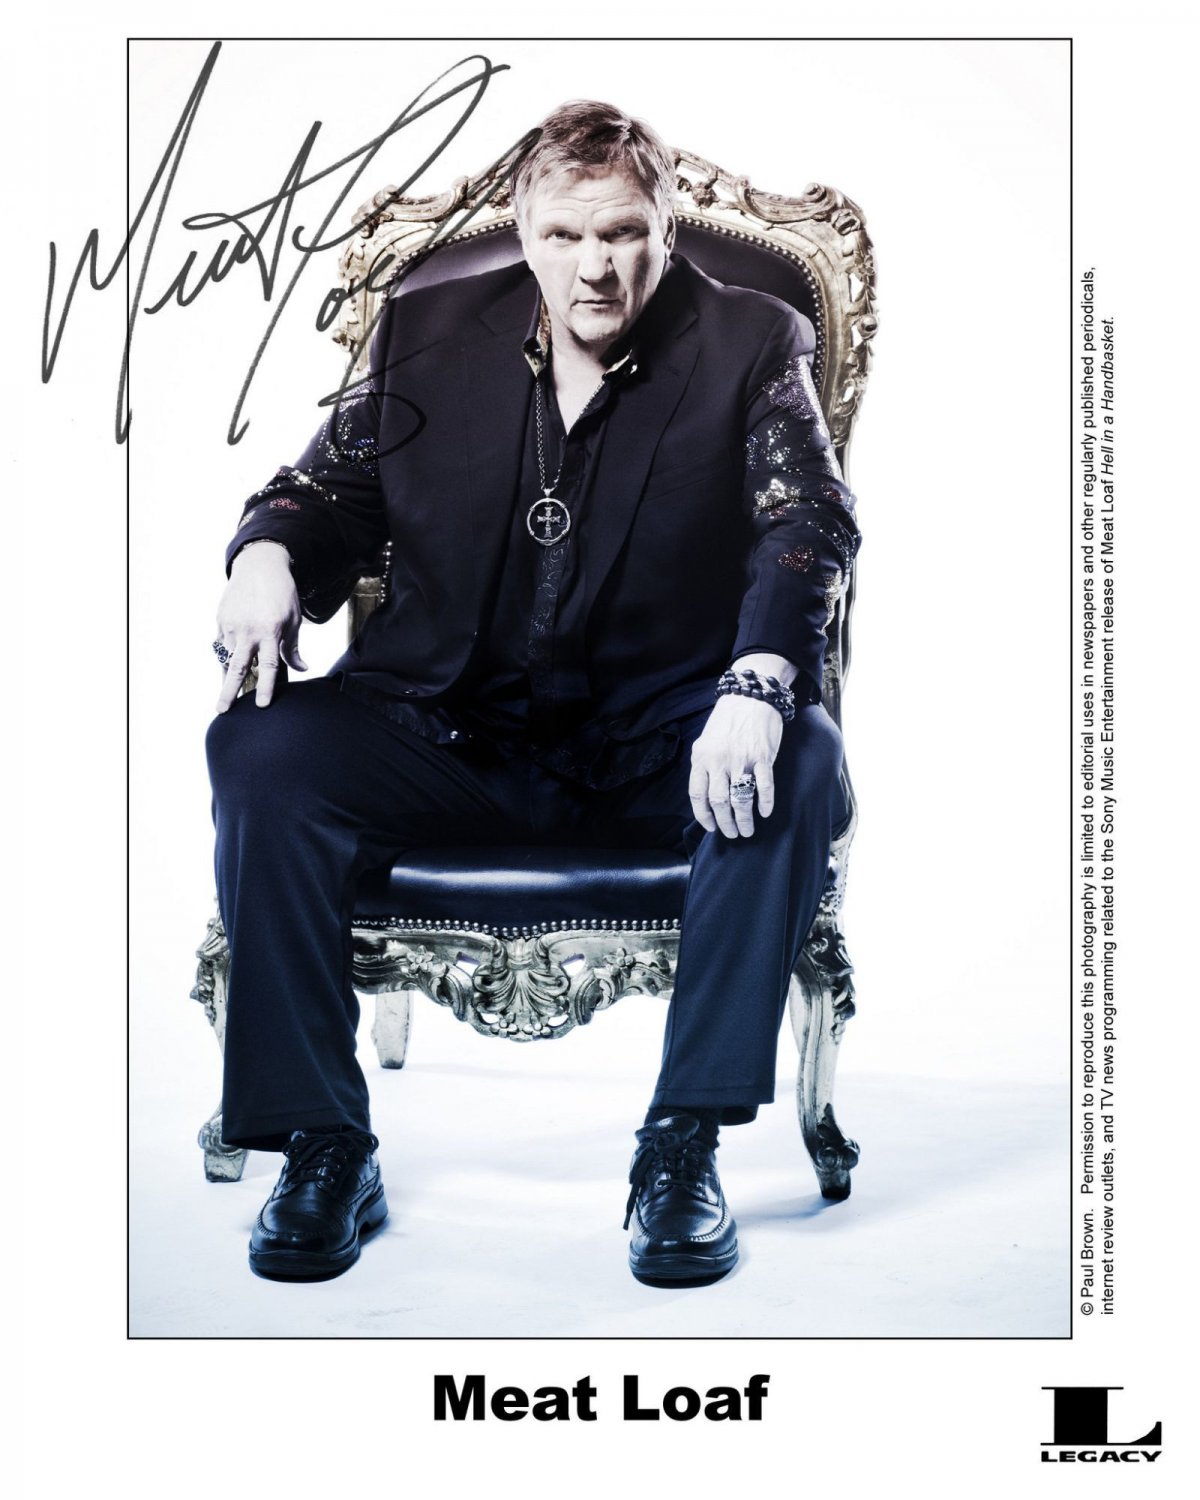 Meat Loaf (Rock Star) Autographed Photo - (Ref:00048)